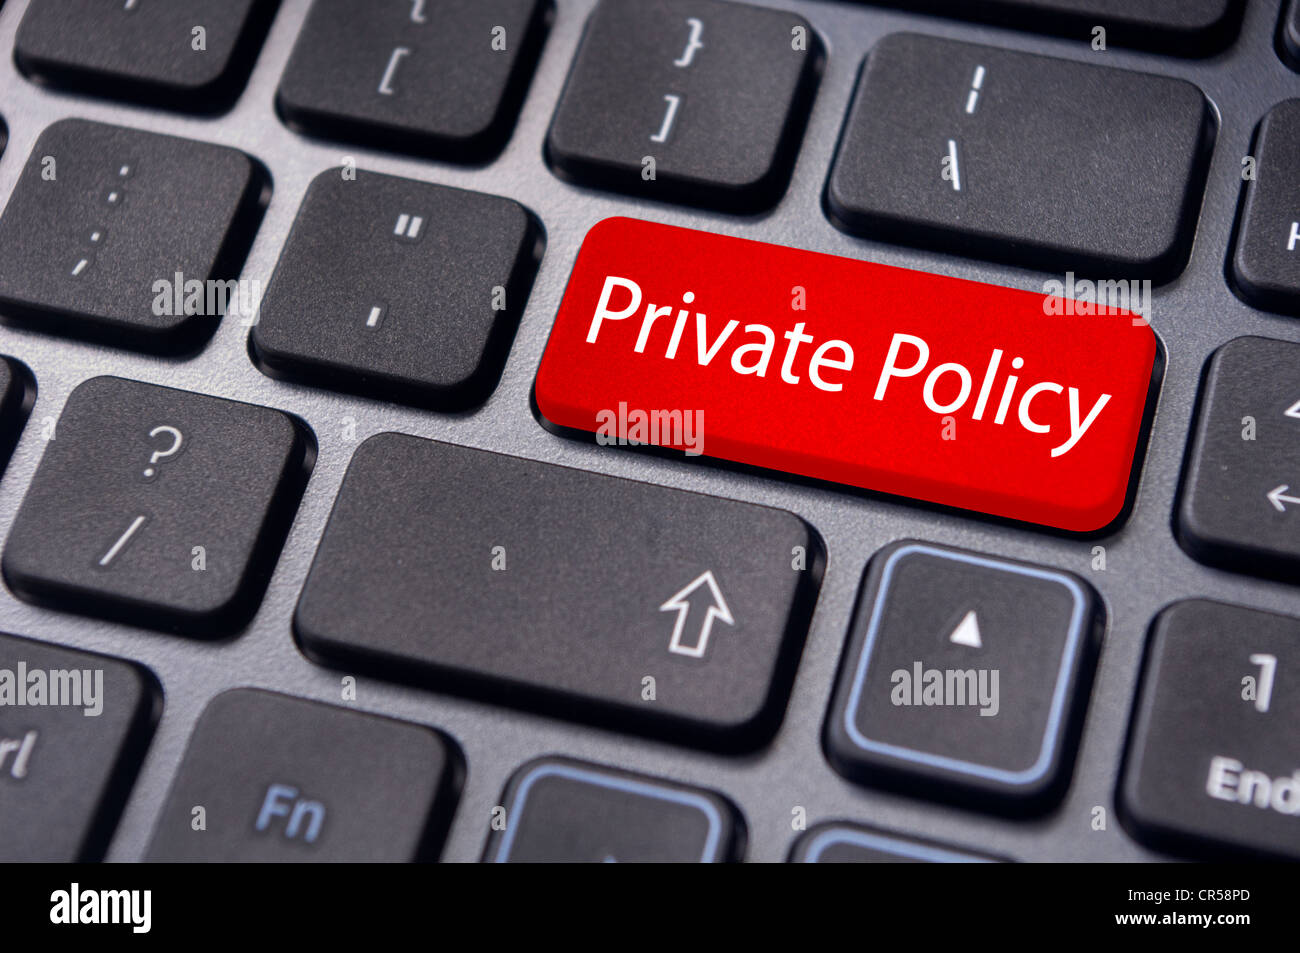 message on keyboard enter key, for privacy policy concepts - Stock Image